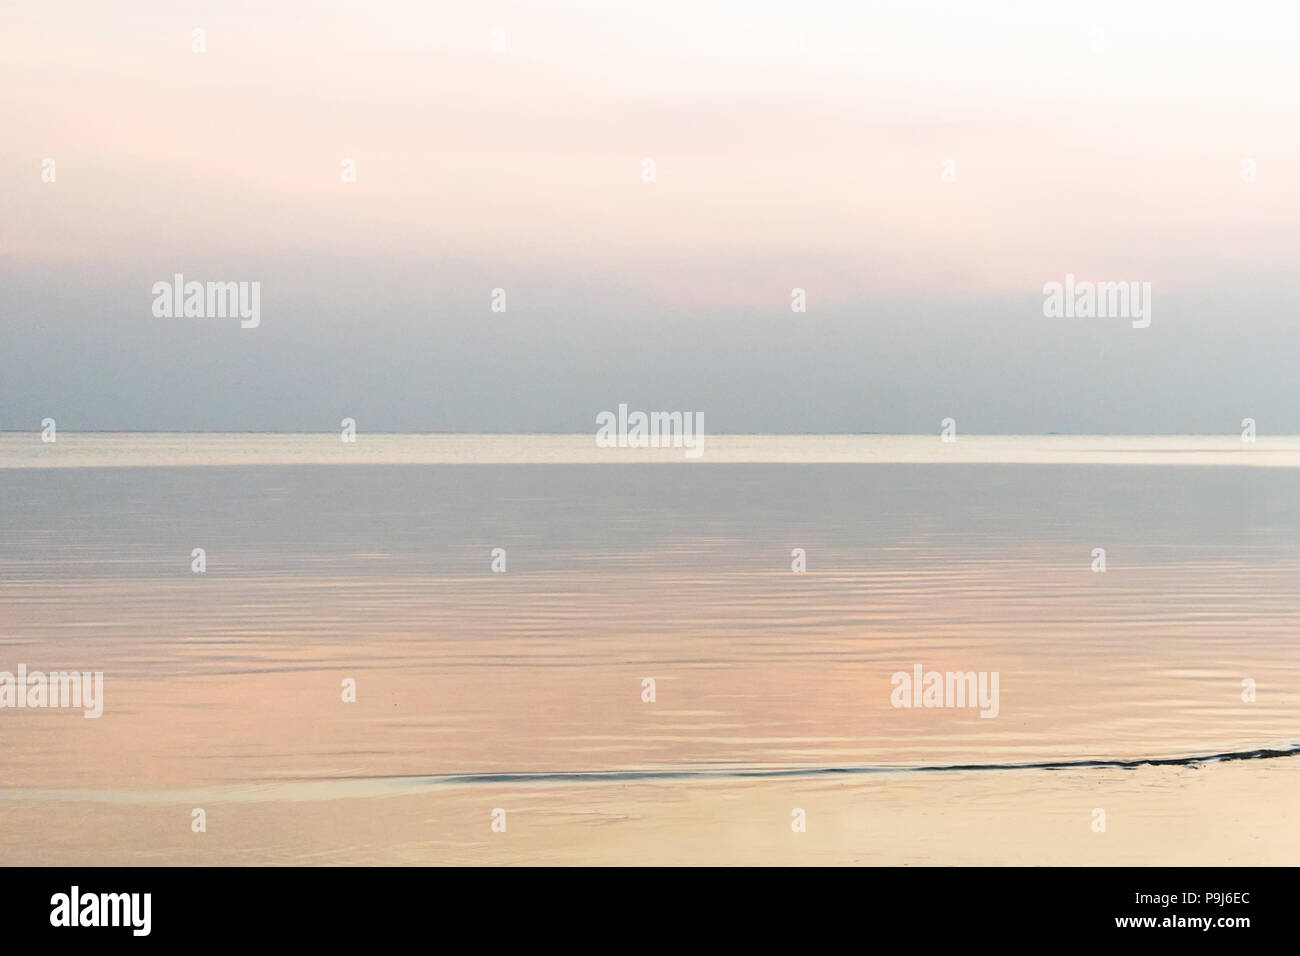 A minimalist landscape with a skyline covered with a single line of a smoking water. Place, where a river meets the sea, Latvia - Stock Image